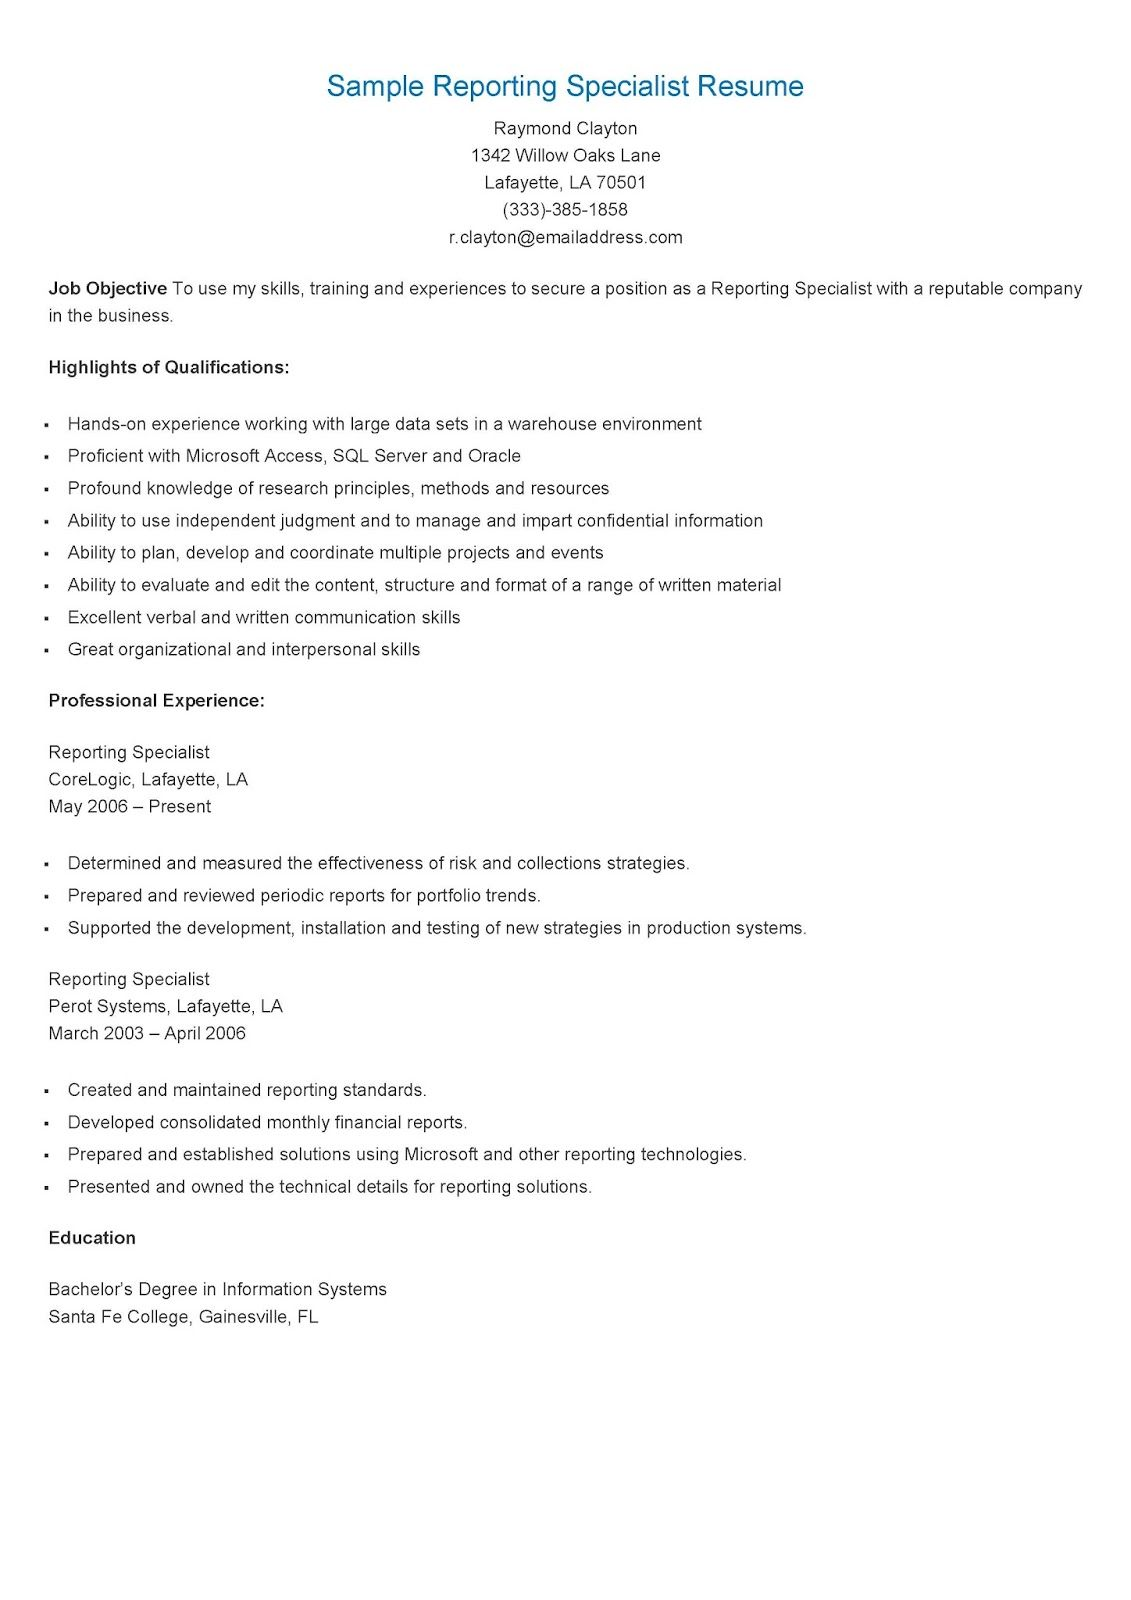 Sample Reporting Specialist Resume  Resame